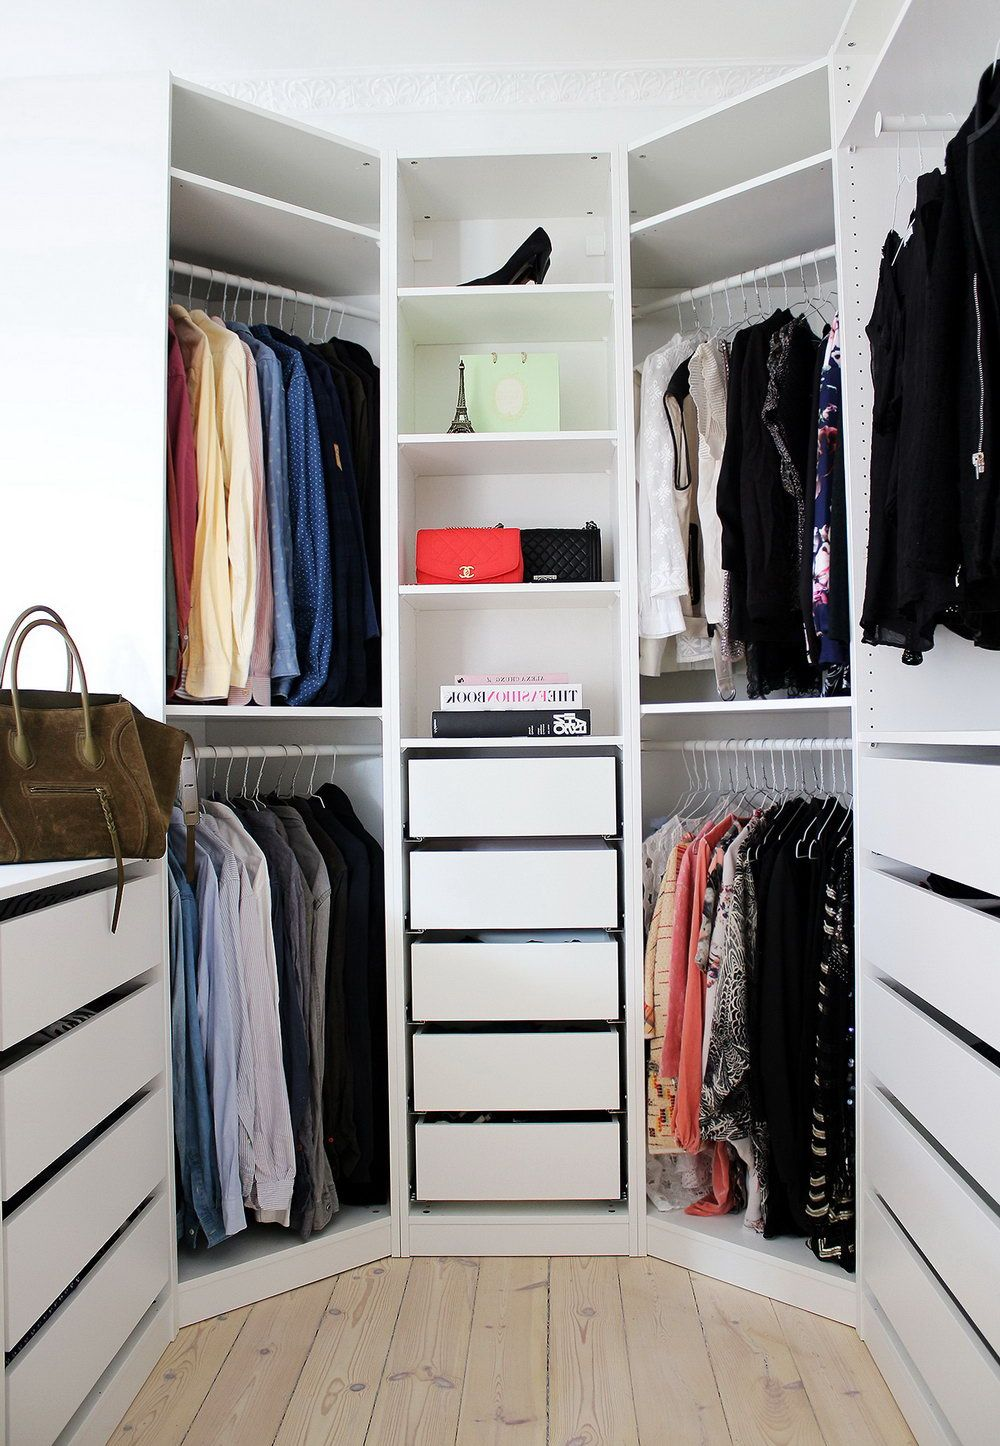 Walk in closet ikea pax home design ideas closet for Ikea dresser in closet